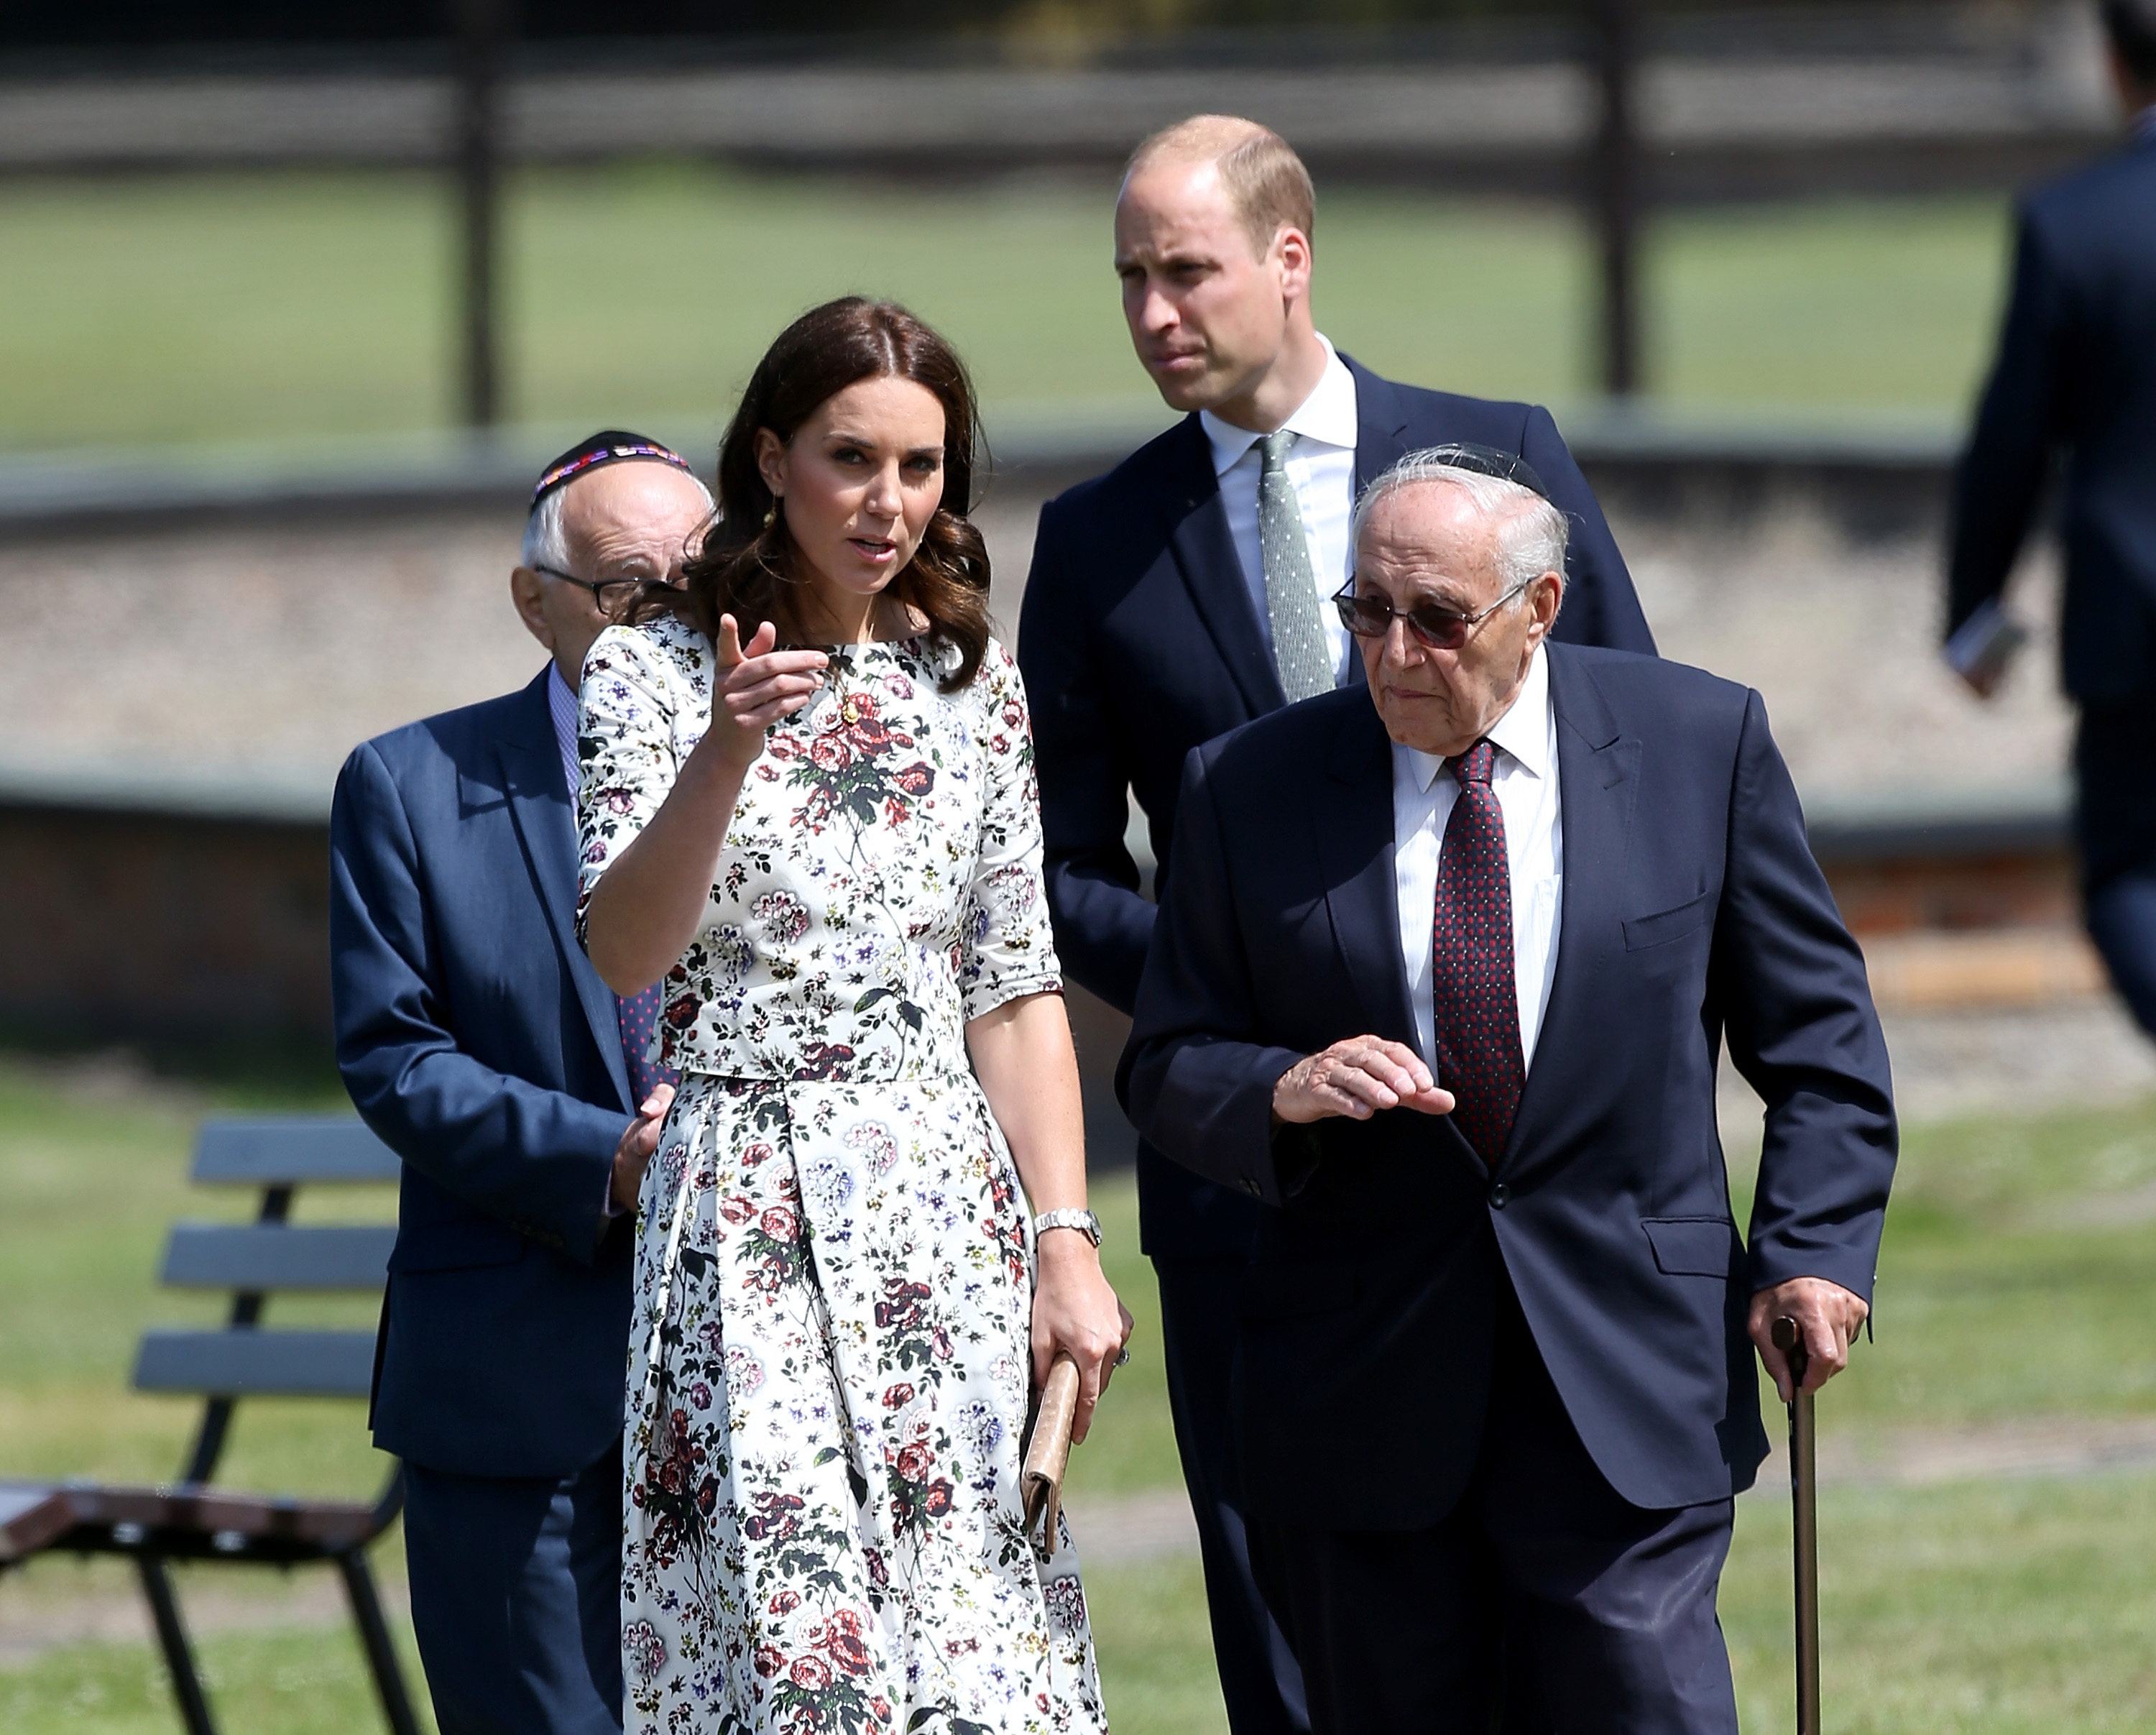 Prince William, Duke of Cambridge and Catherine, Duchess of Cambridge talk with former prisoners from the Stutthof concentration camp during an official visit to Poland and Germany on July 18, 2017 in Gdansk, Poland.